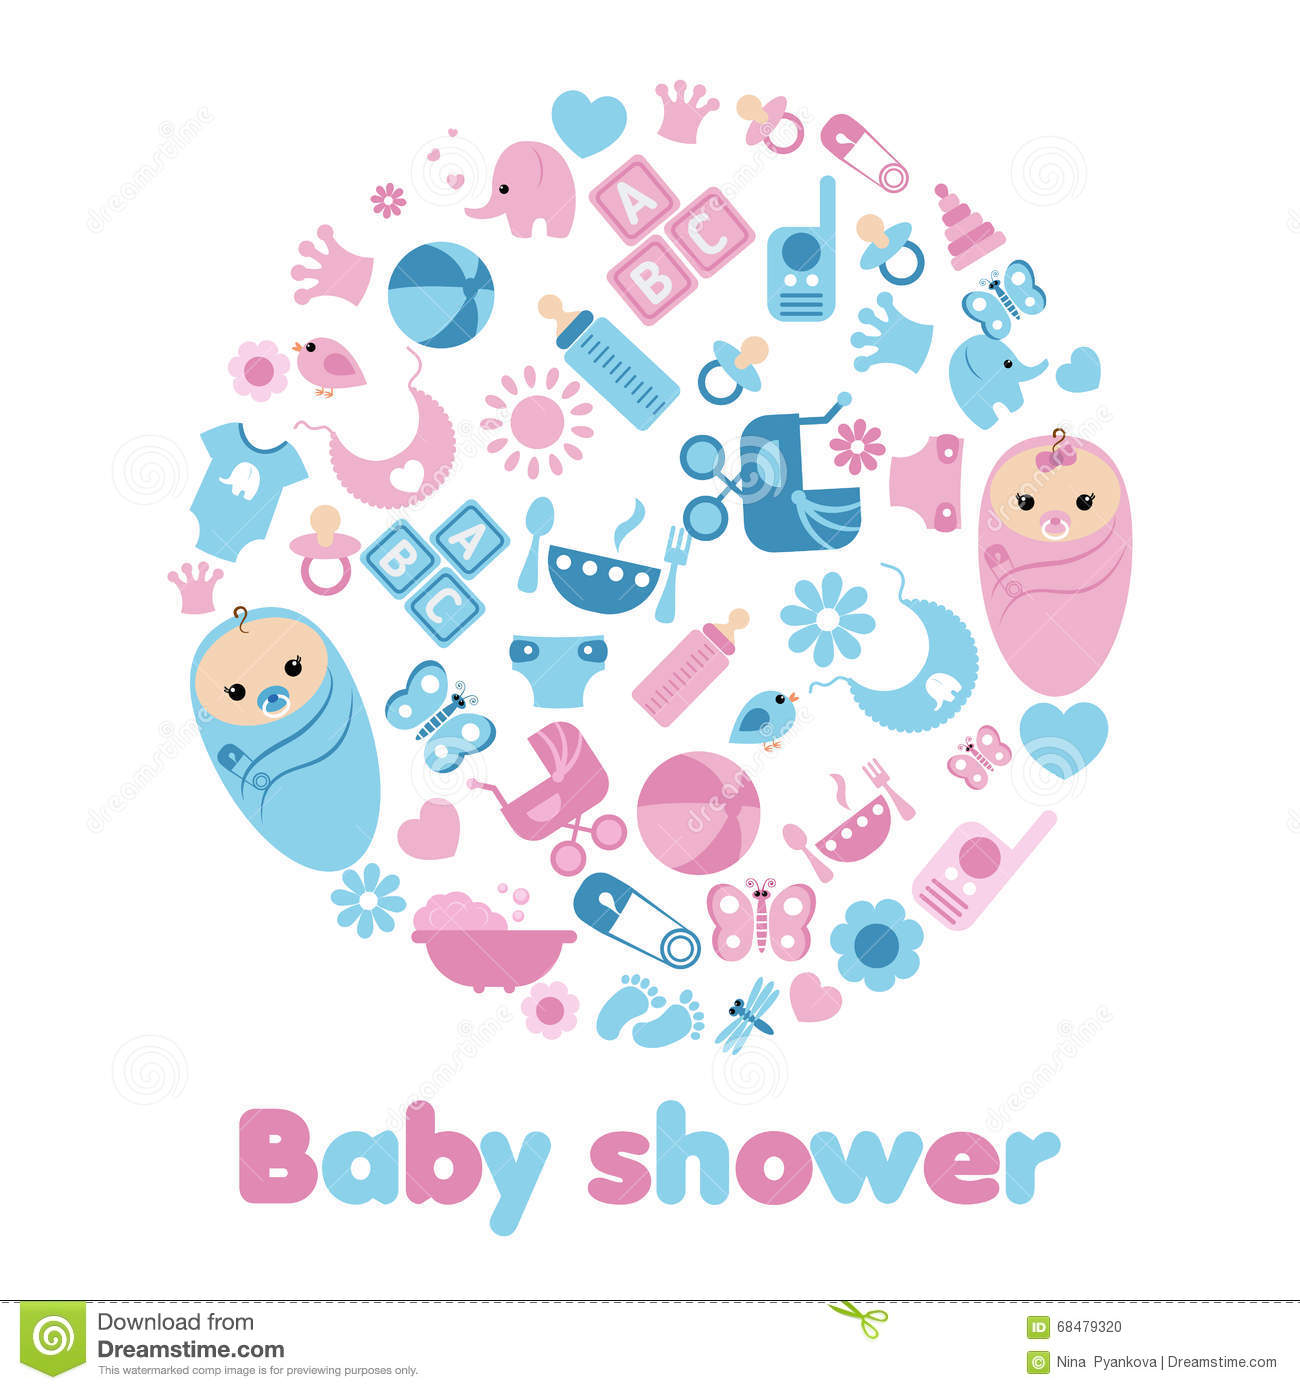 Baby shower background stock vector illustration of flower 68479320 baby shower background buycottarizona Gallery